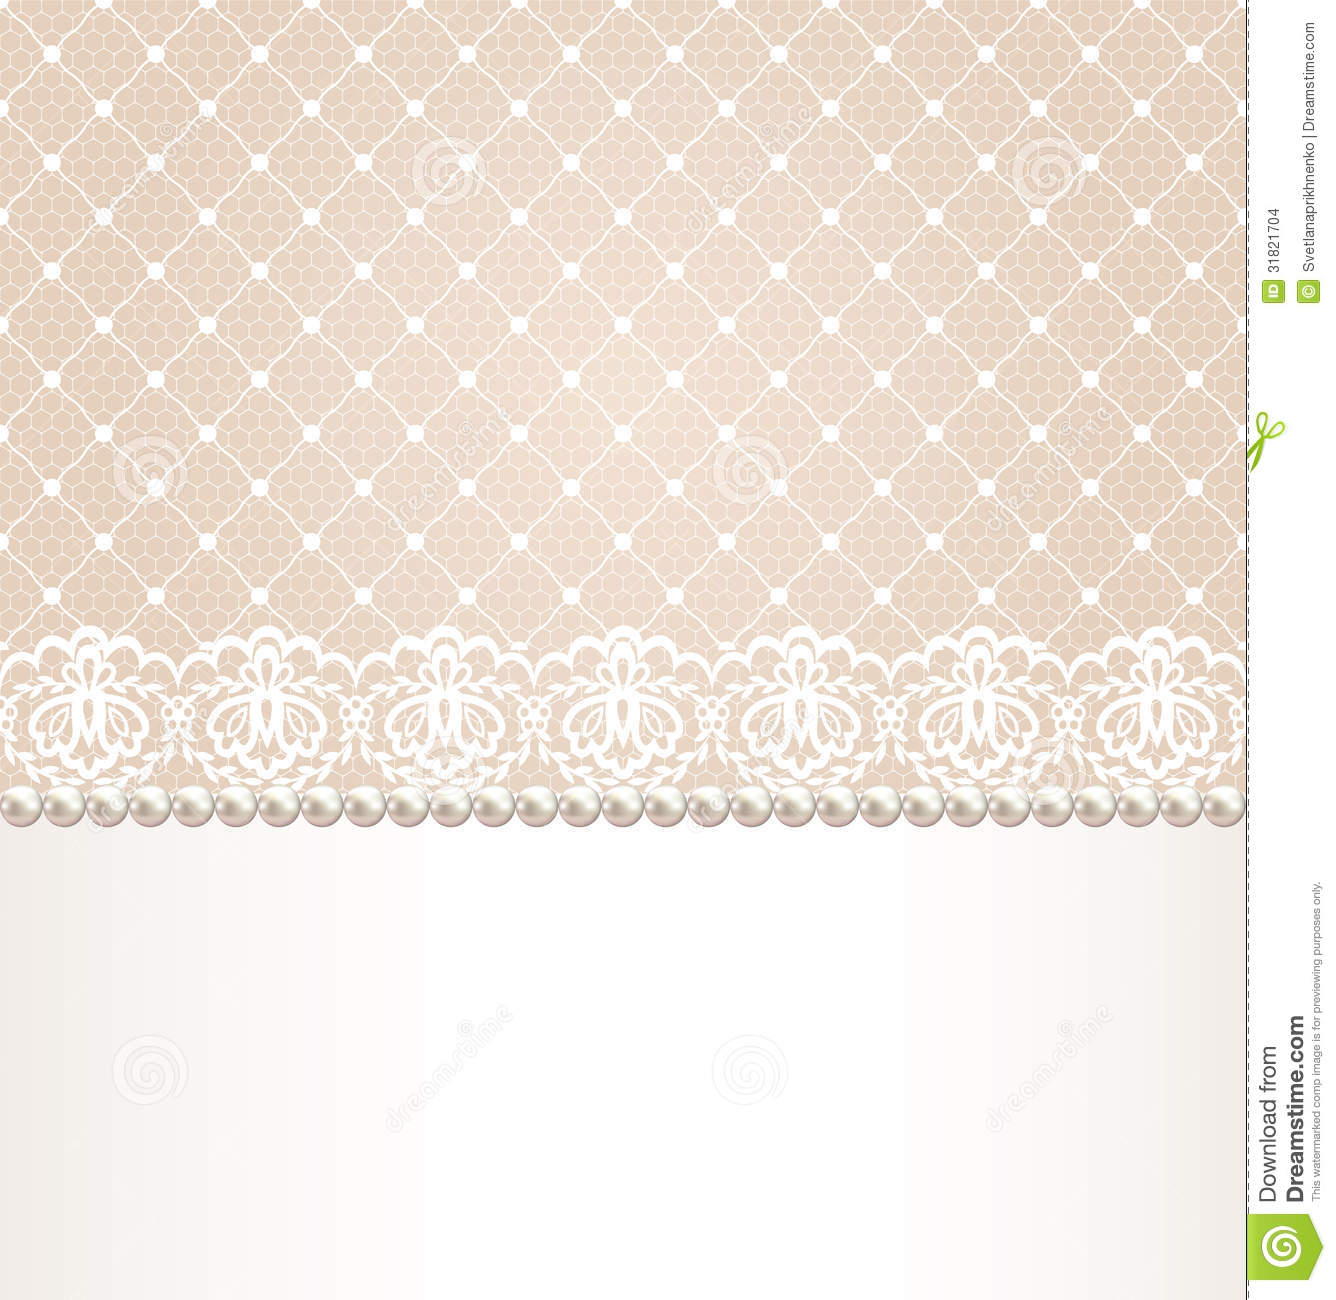 Shabby Wedding Invitations is awesome invitations layout